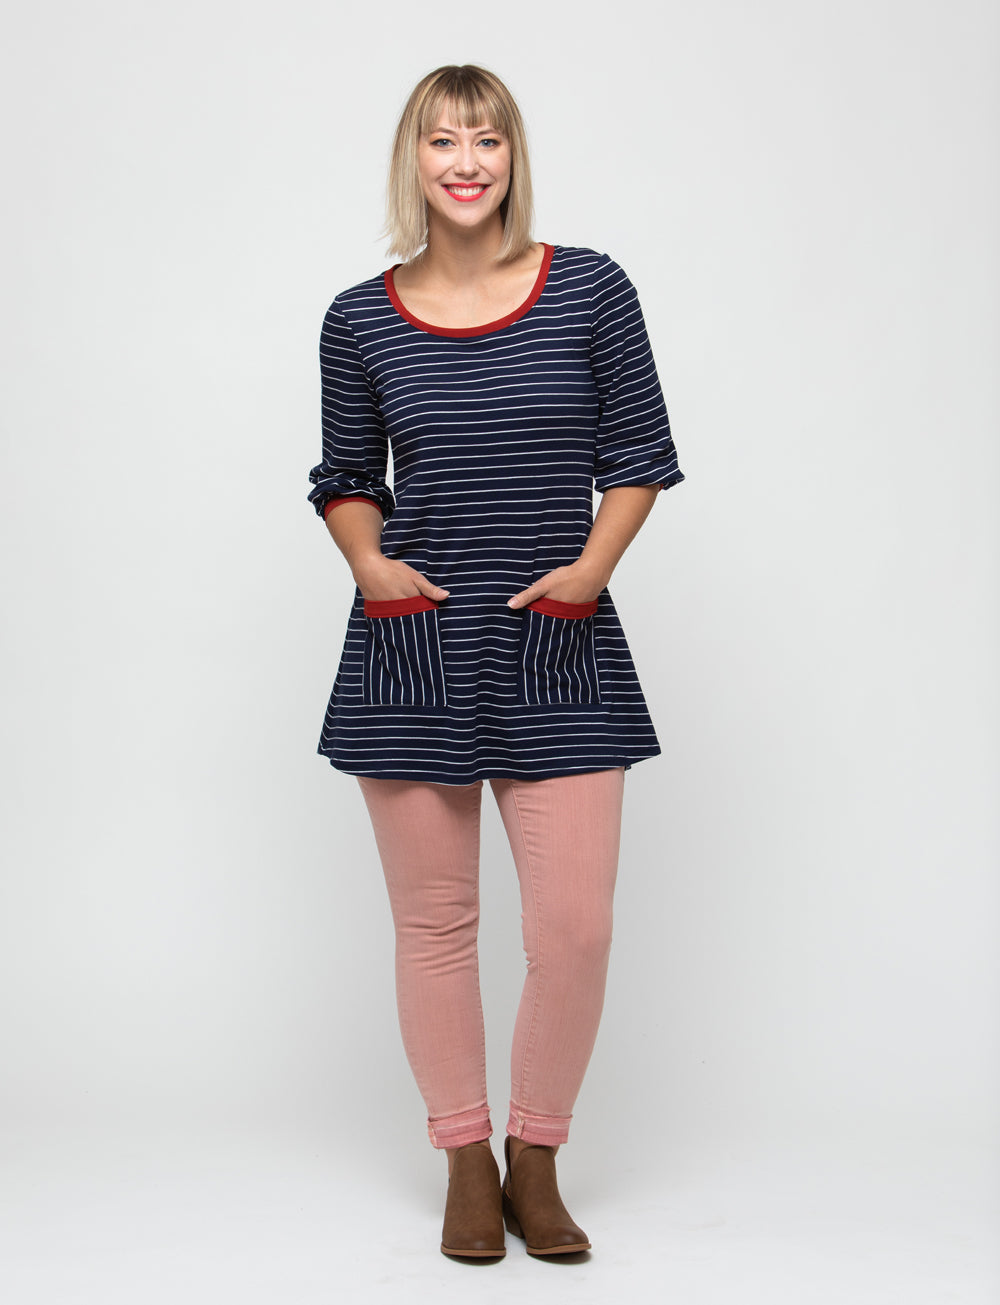 Layer Cake Tunic, Physical, Mallory